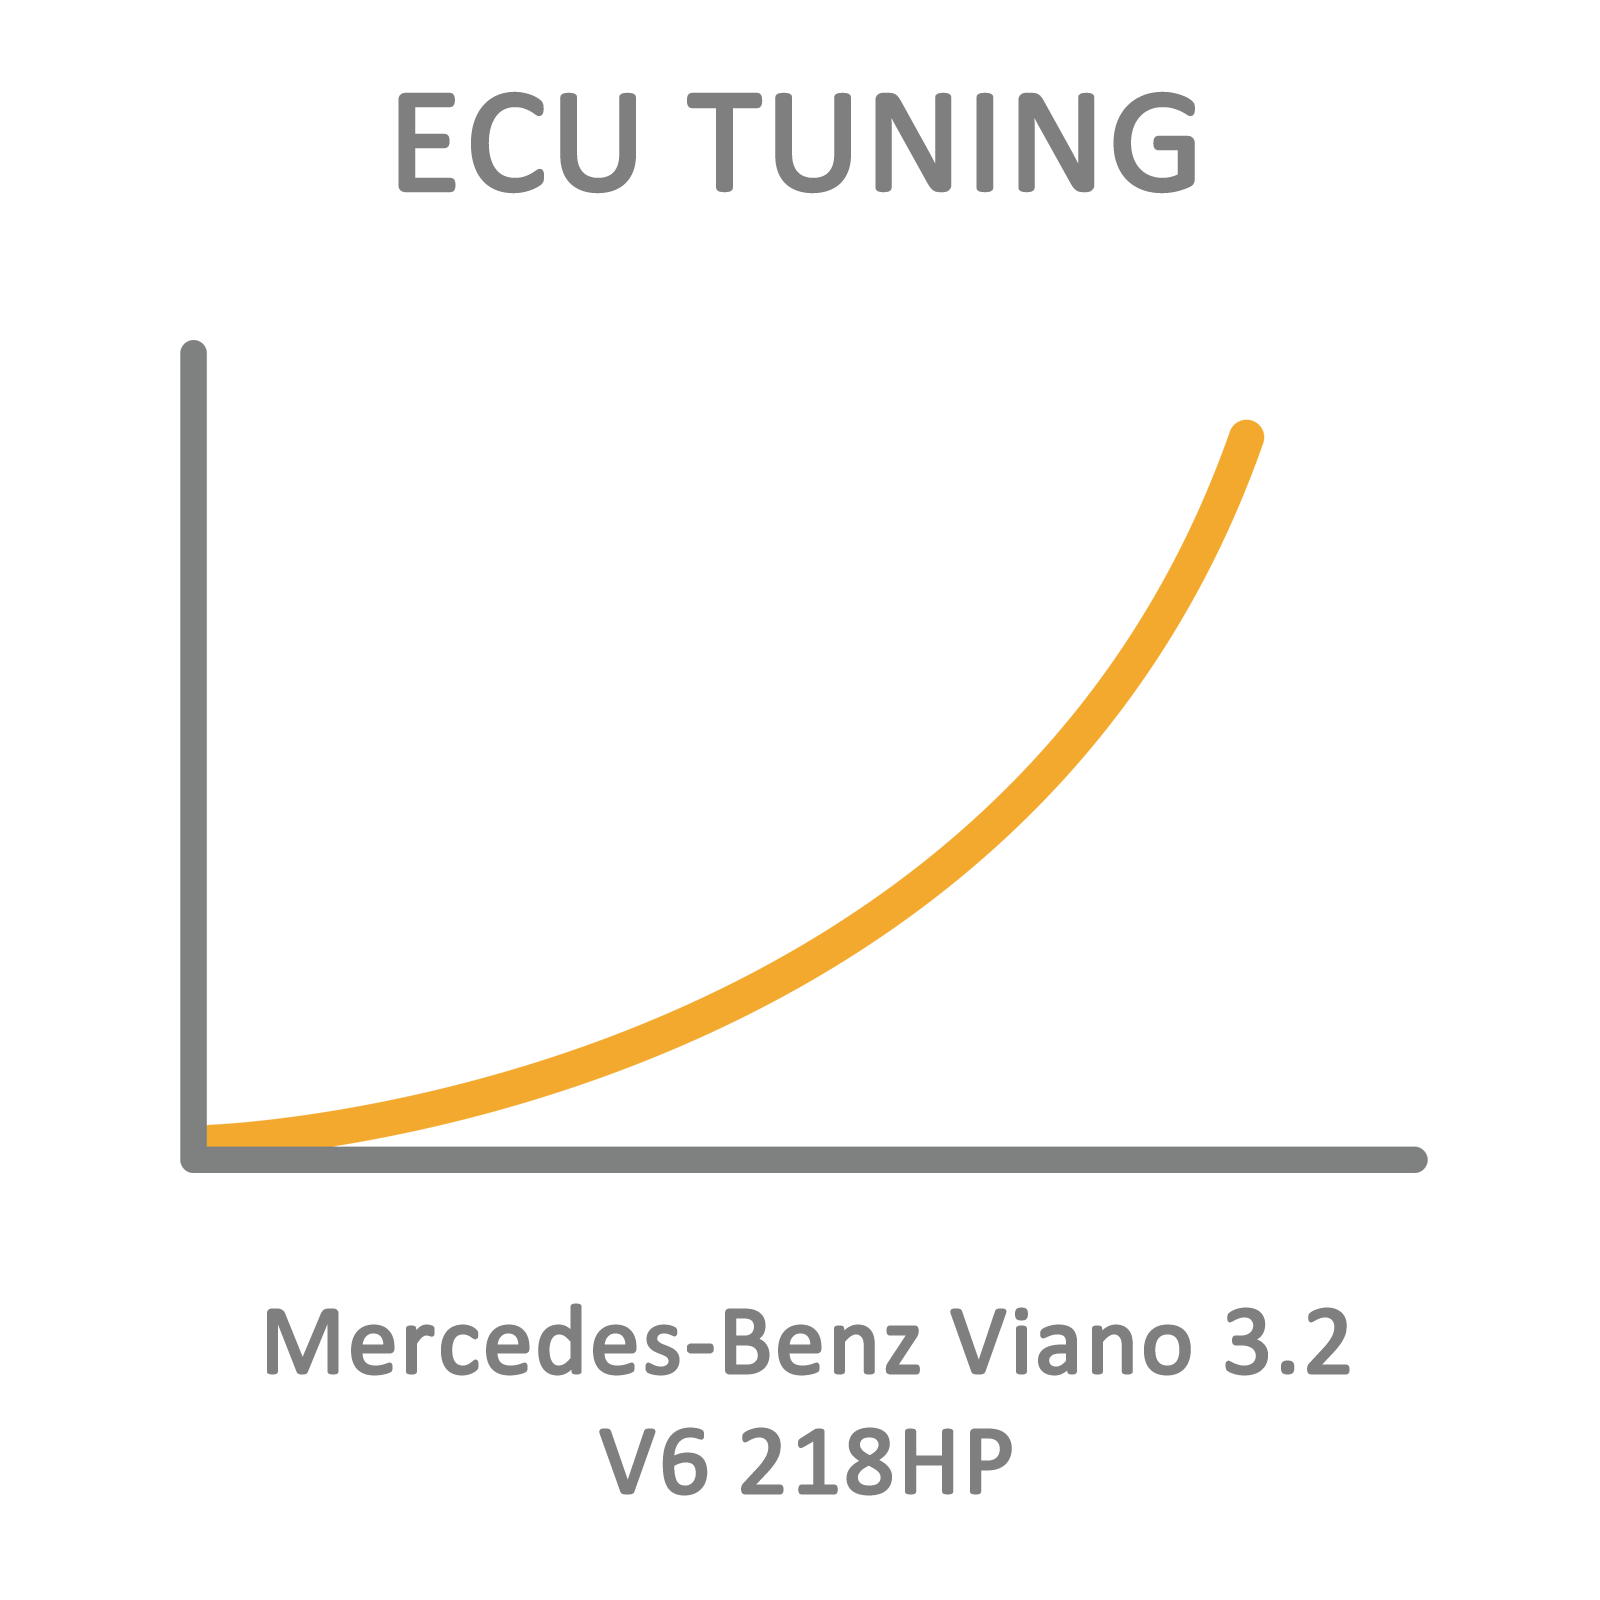 Mercedes-Benz Viano 3.2 V6 218HP ECU Tuning Remapping